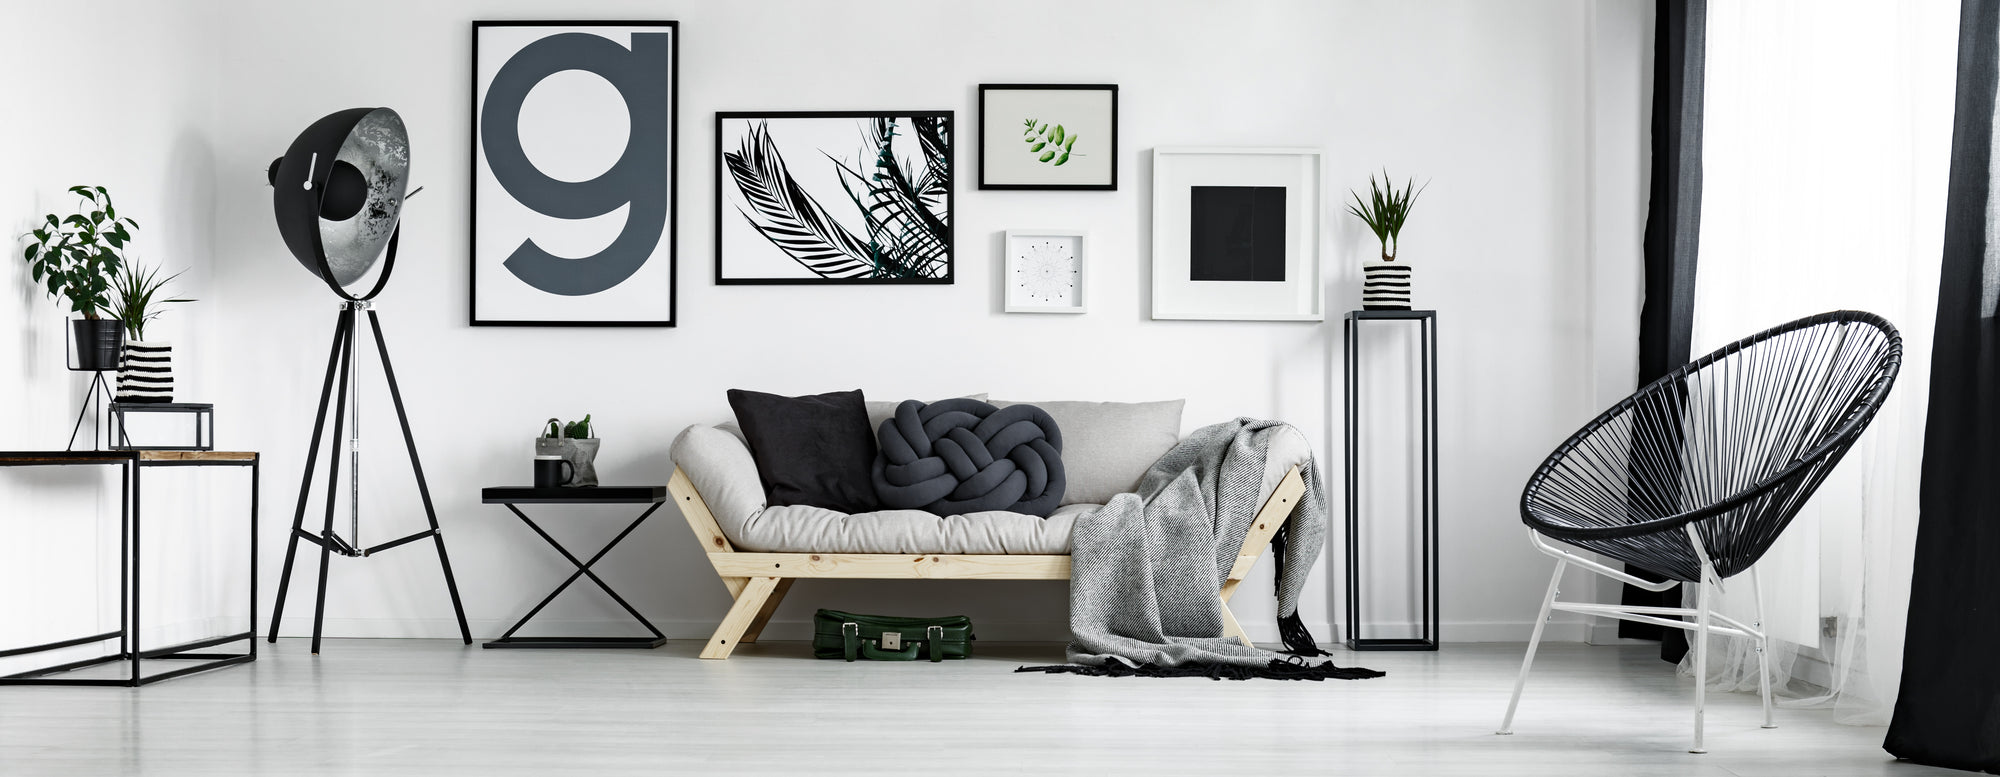 Minimalist Living room - Light white tones with modern accent pieces